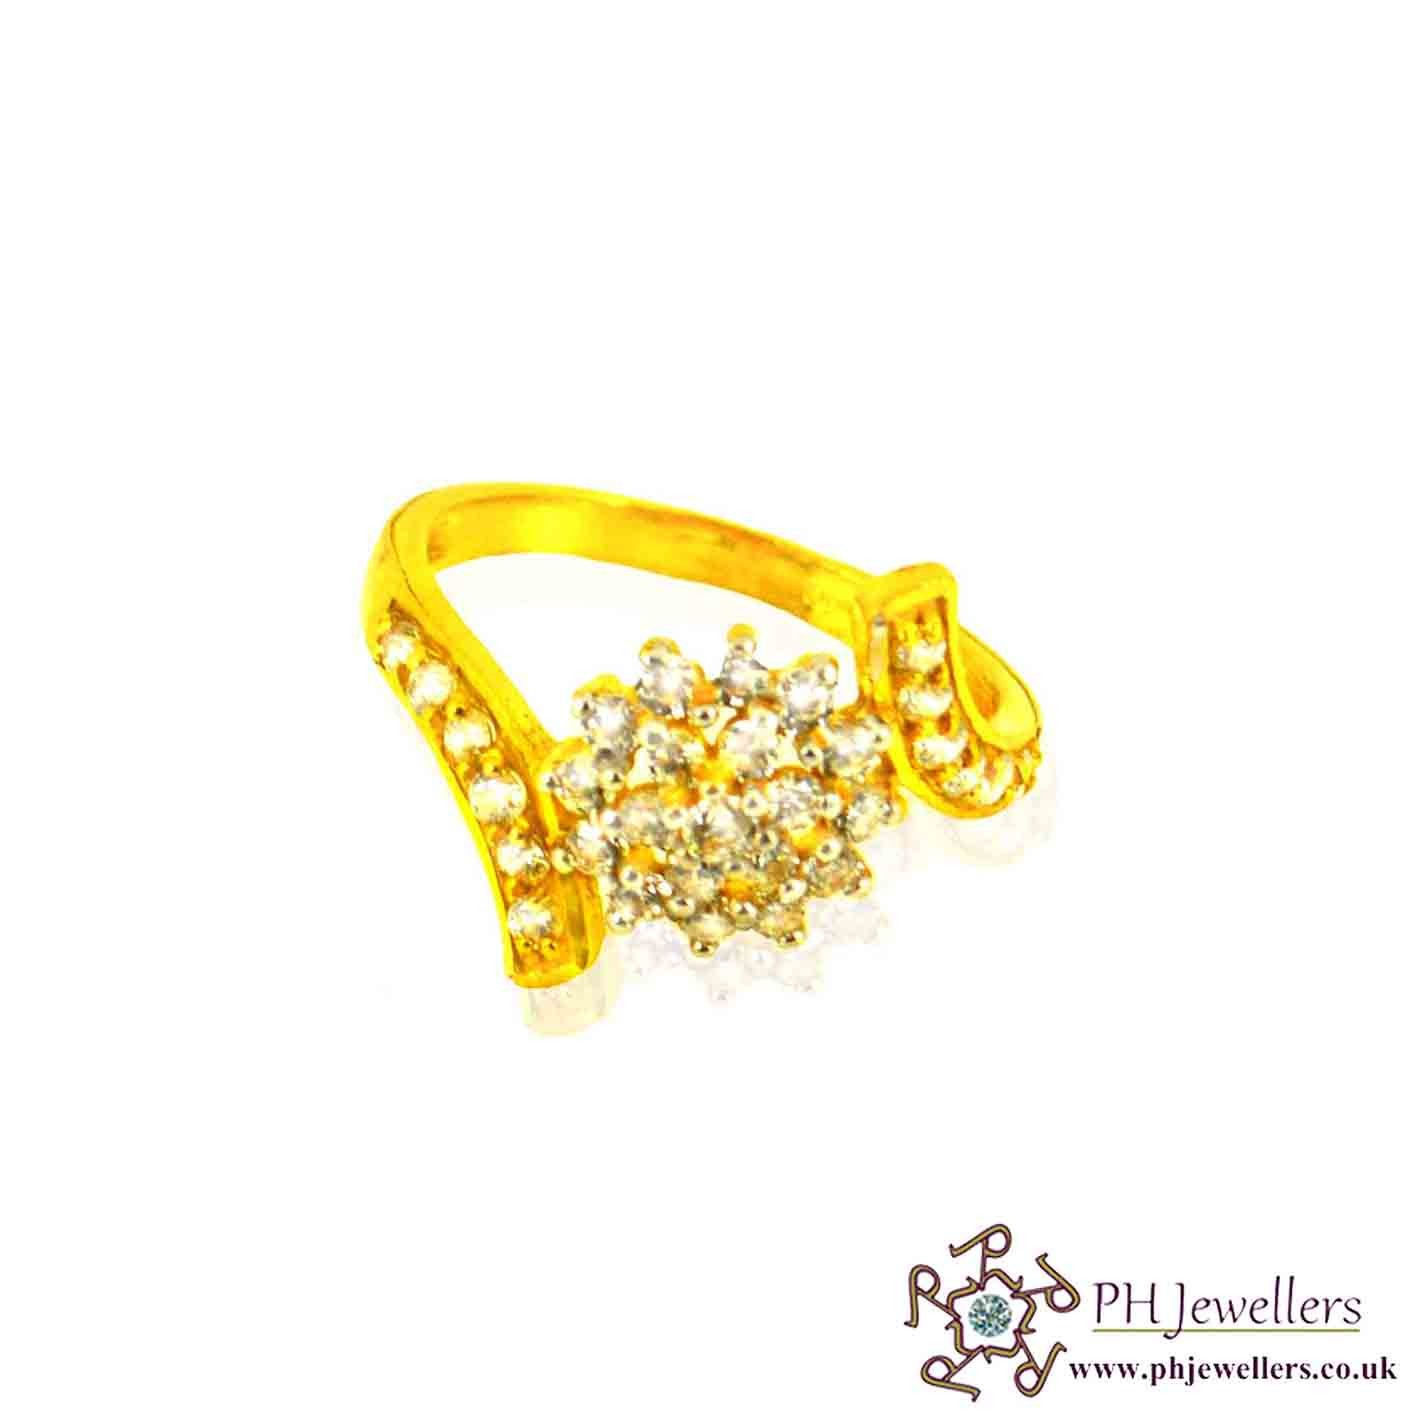 22ct 916 Hallmark Yellow Gold Cluster Size L 1/2,M,N Ring CZ SR29